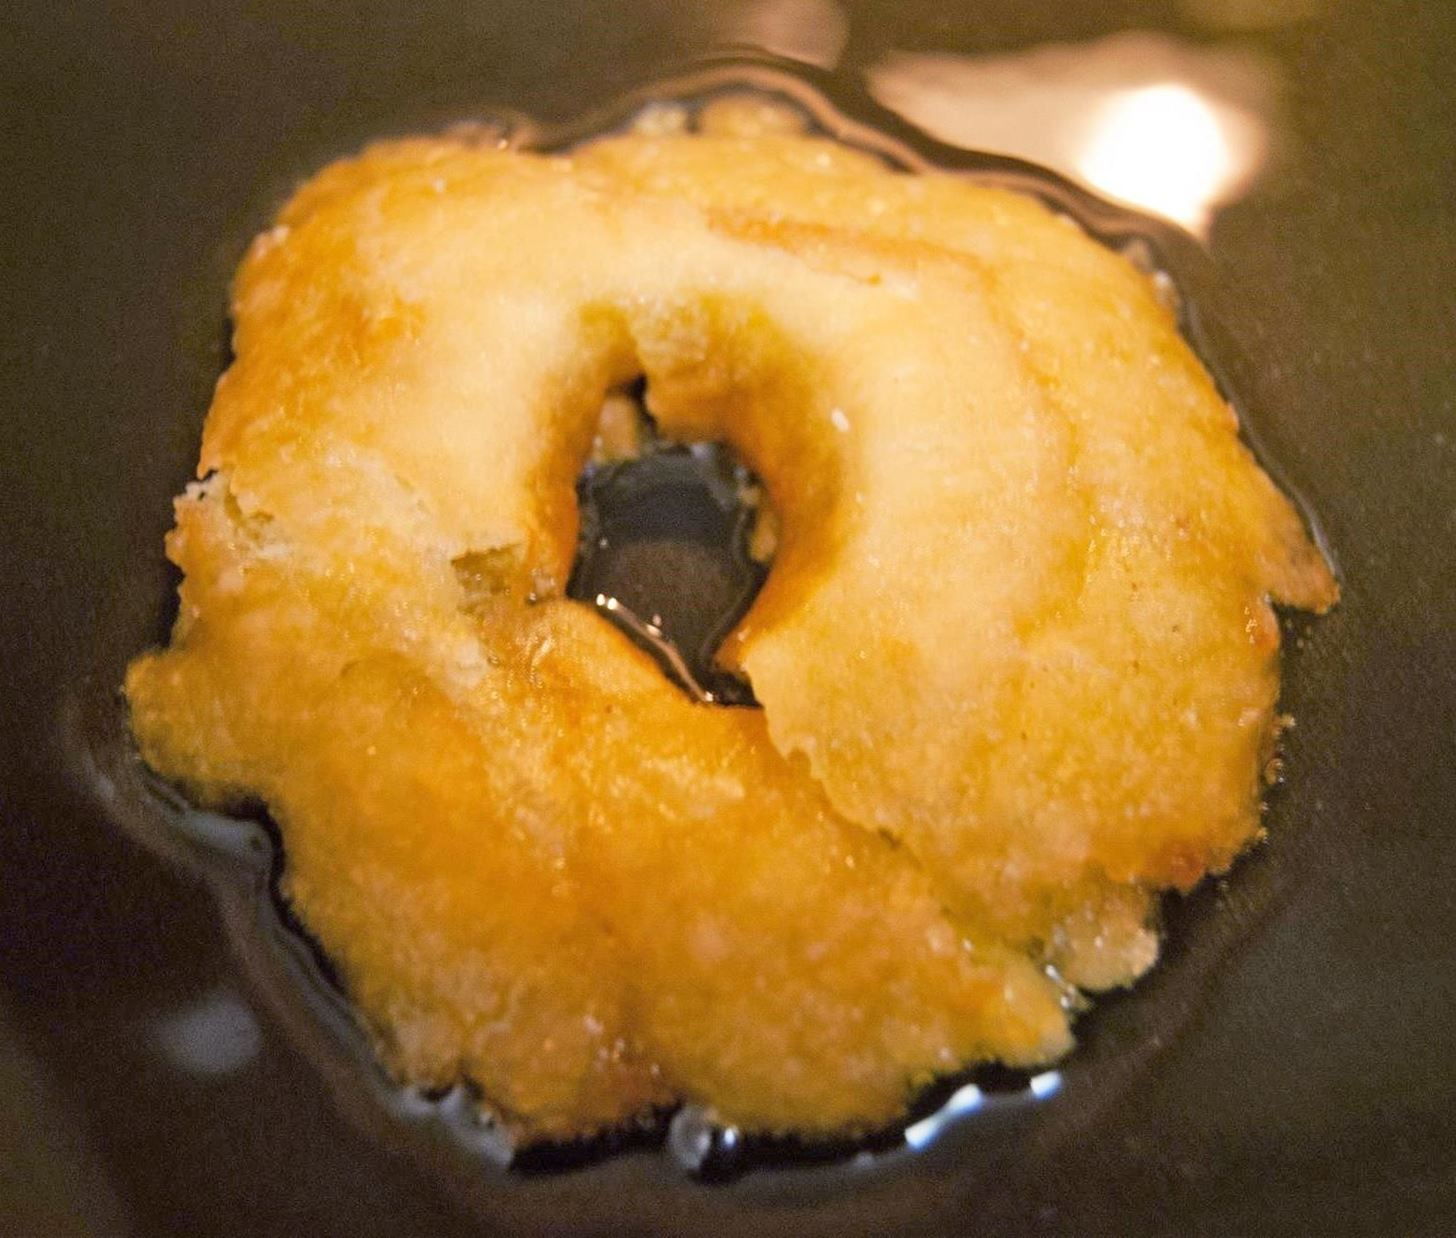 Give Stale Donuts a Crispy New Life by Turning Them into Chips